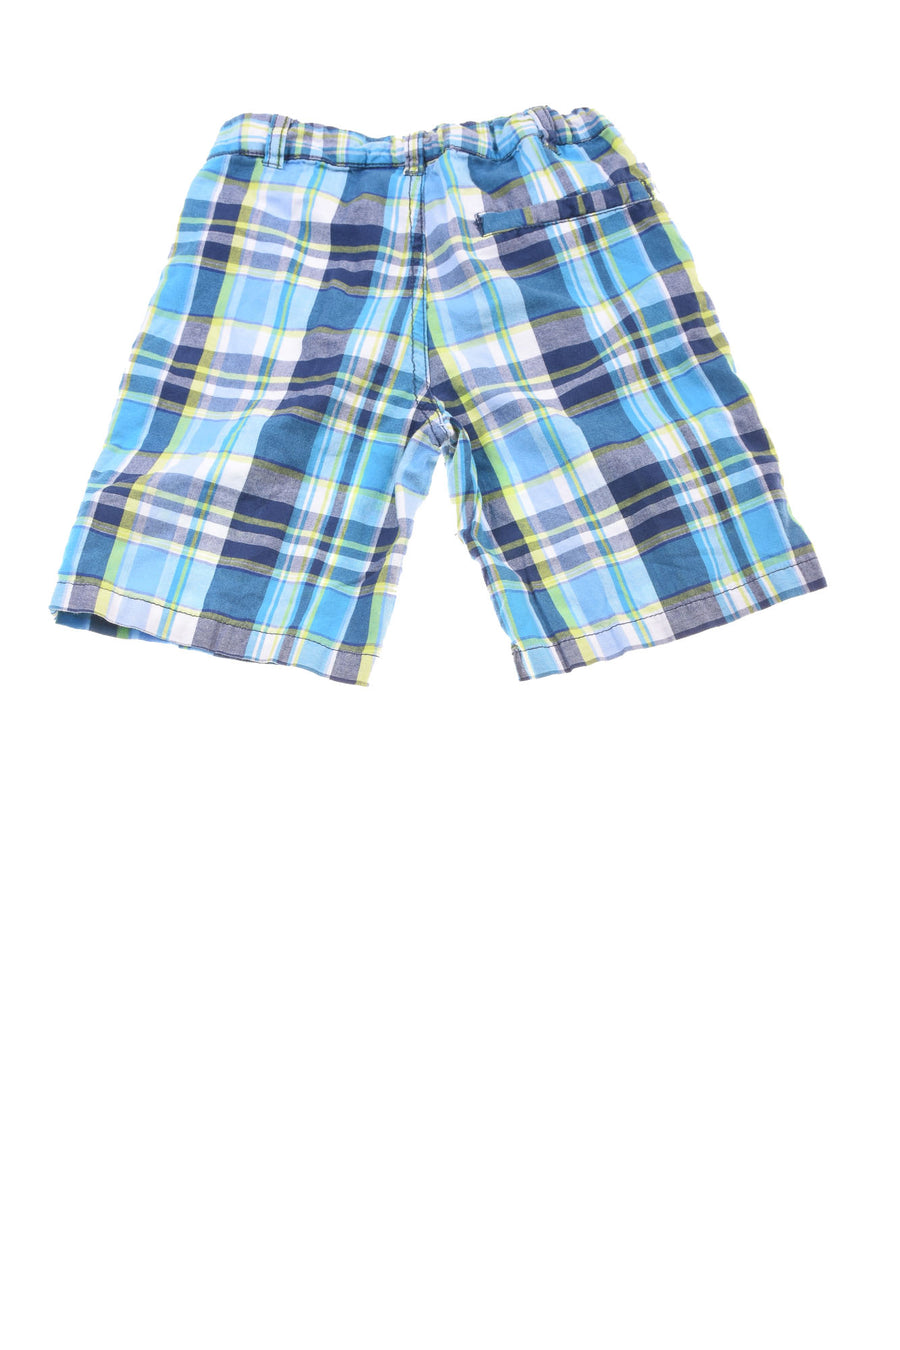 USED Nautica Toddler Boy's Shorts 3T Blue, Green, & White